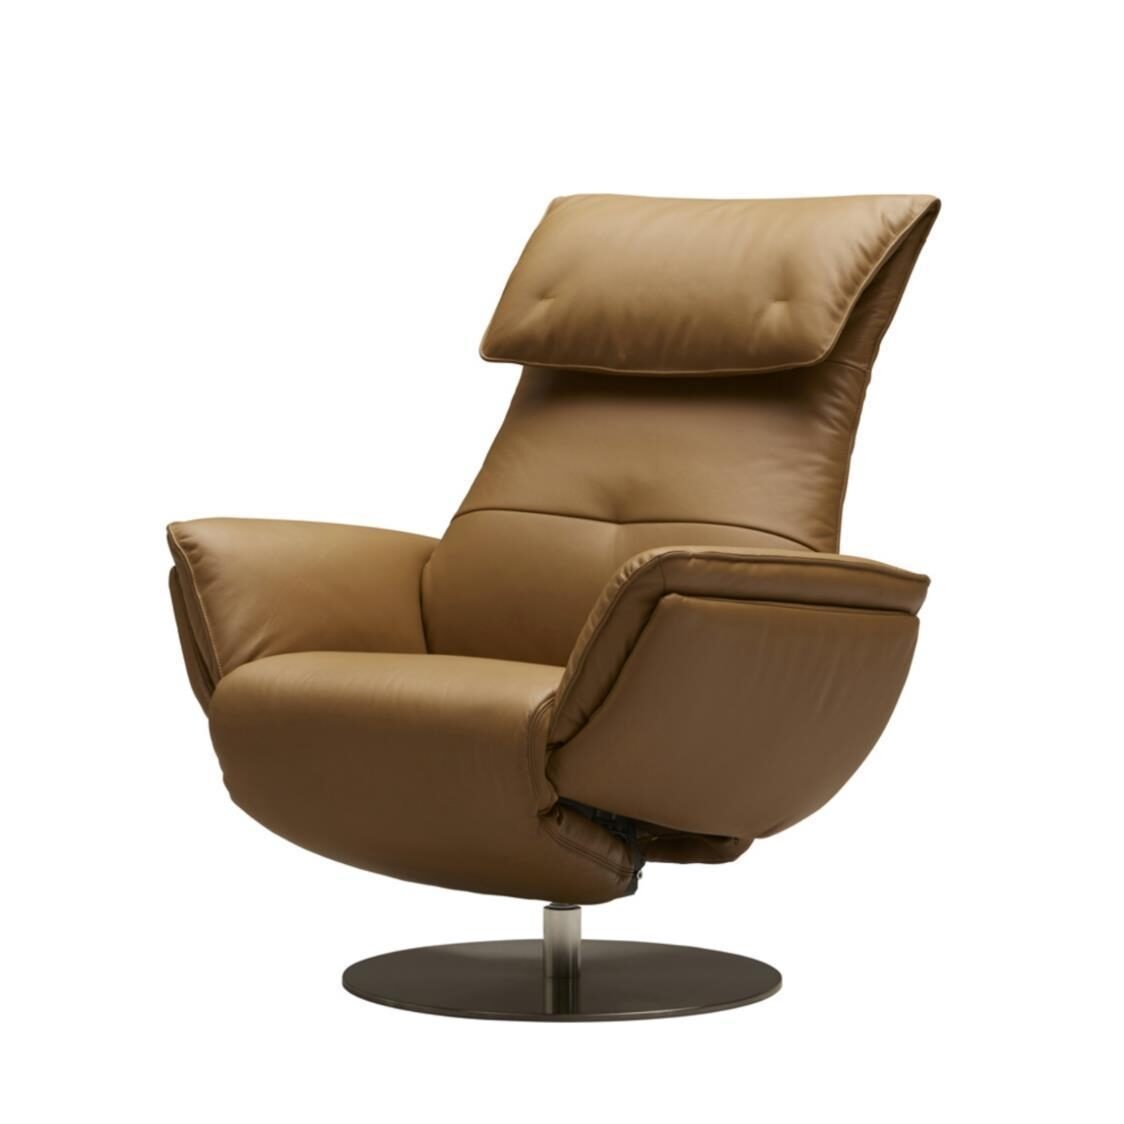 Wolke Chair - Half Leather L665L Camel